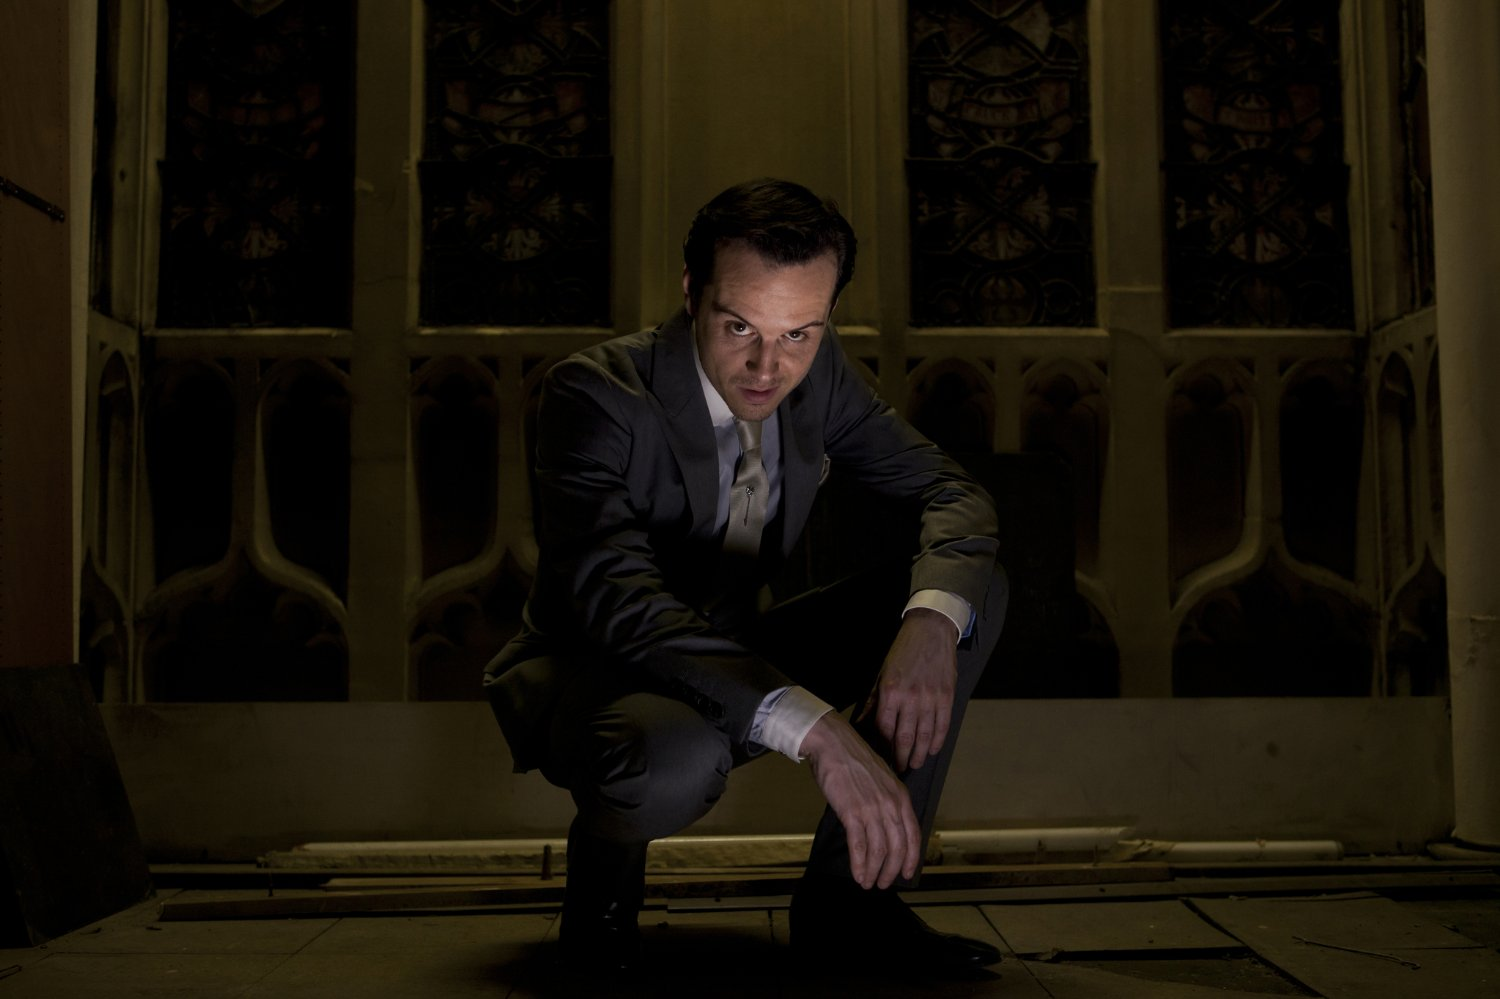 jim-moriarty-1